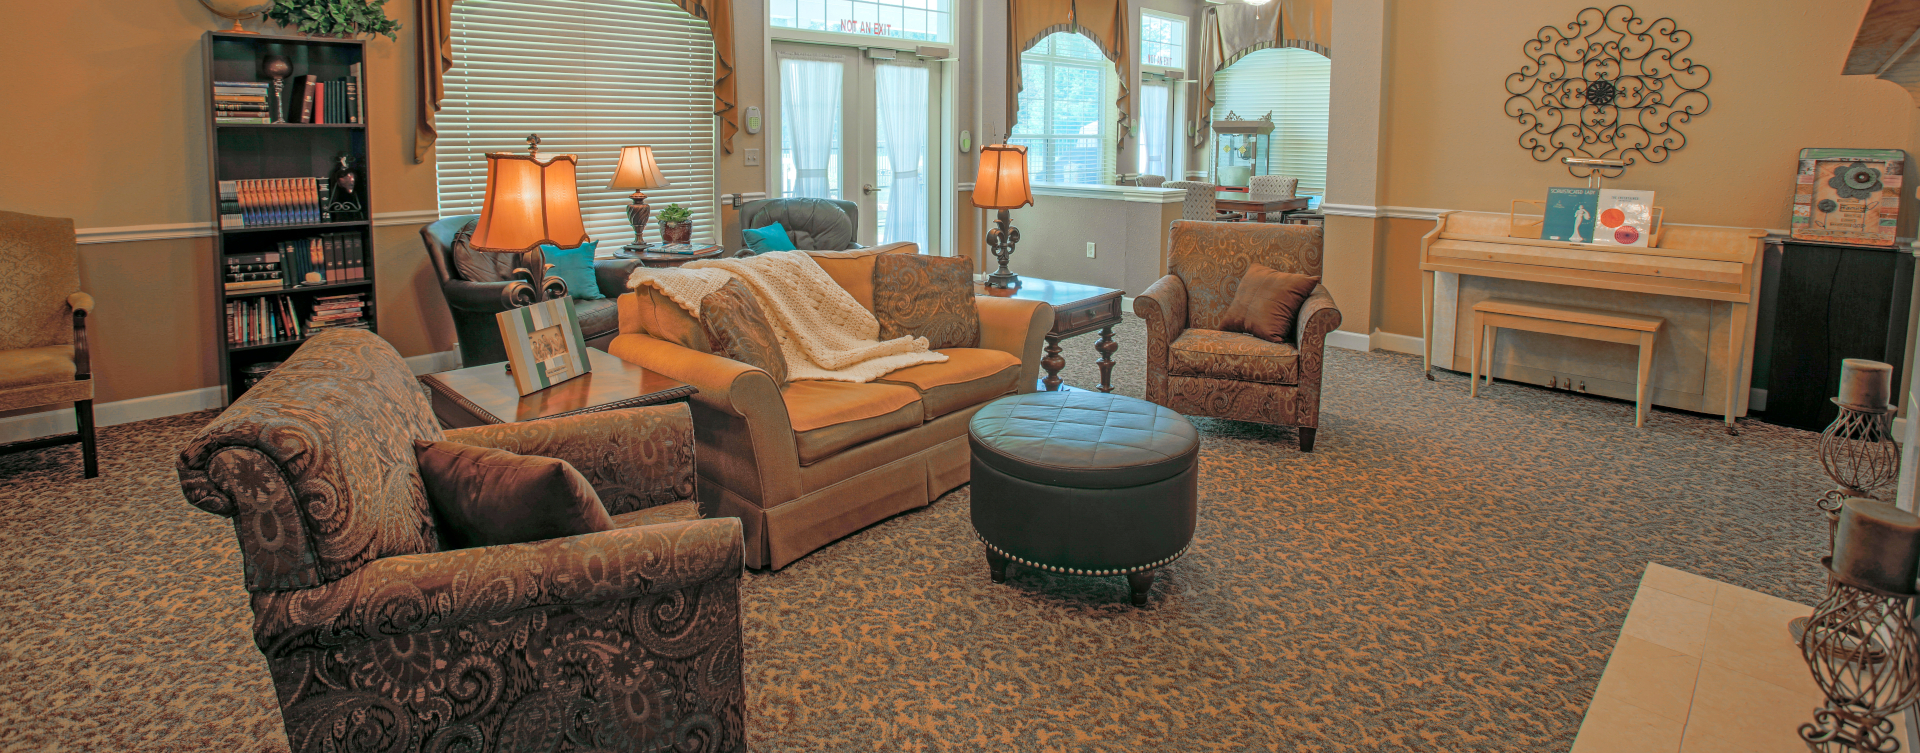 Snooze in your favorite chair in the living room at Bickford of Wabash